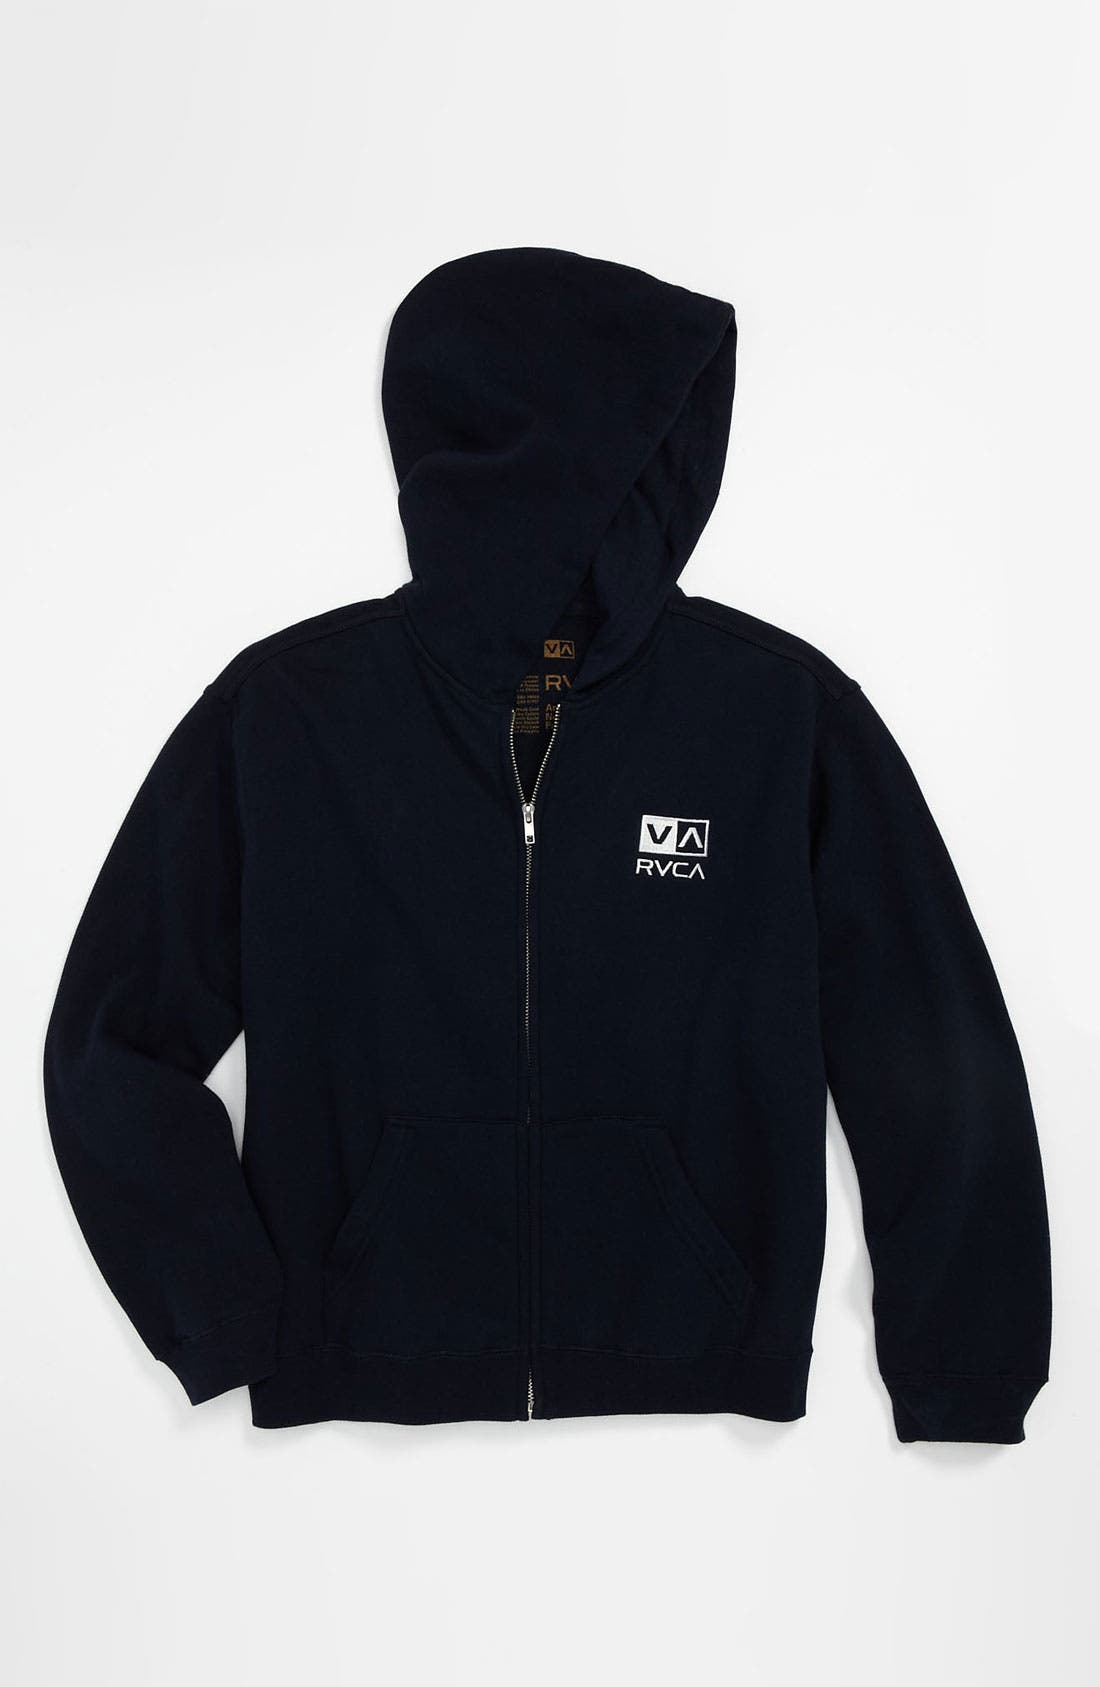 Alternate Image 1 Selected - RVCA 'VA Little' Zip Hoodie (Big Boys)